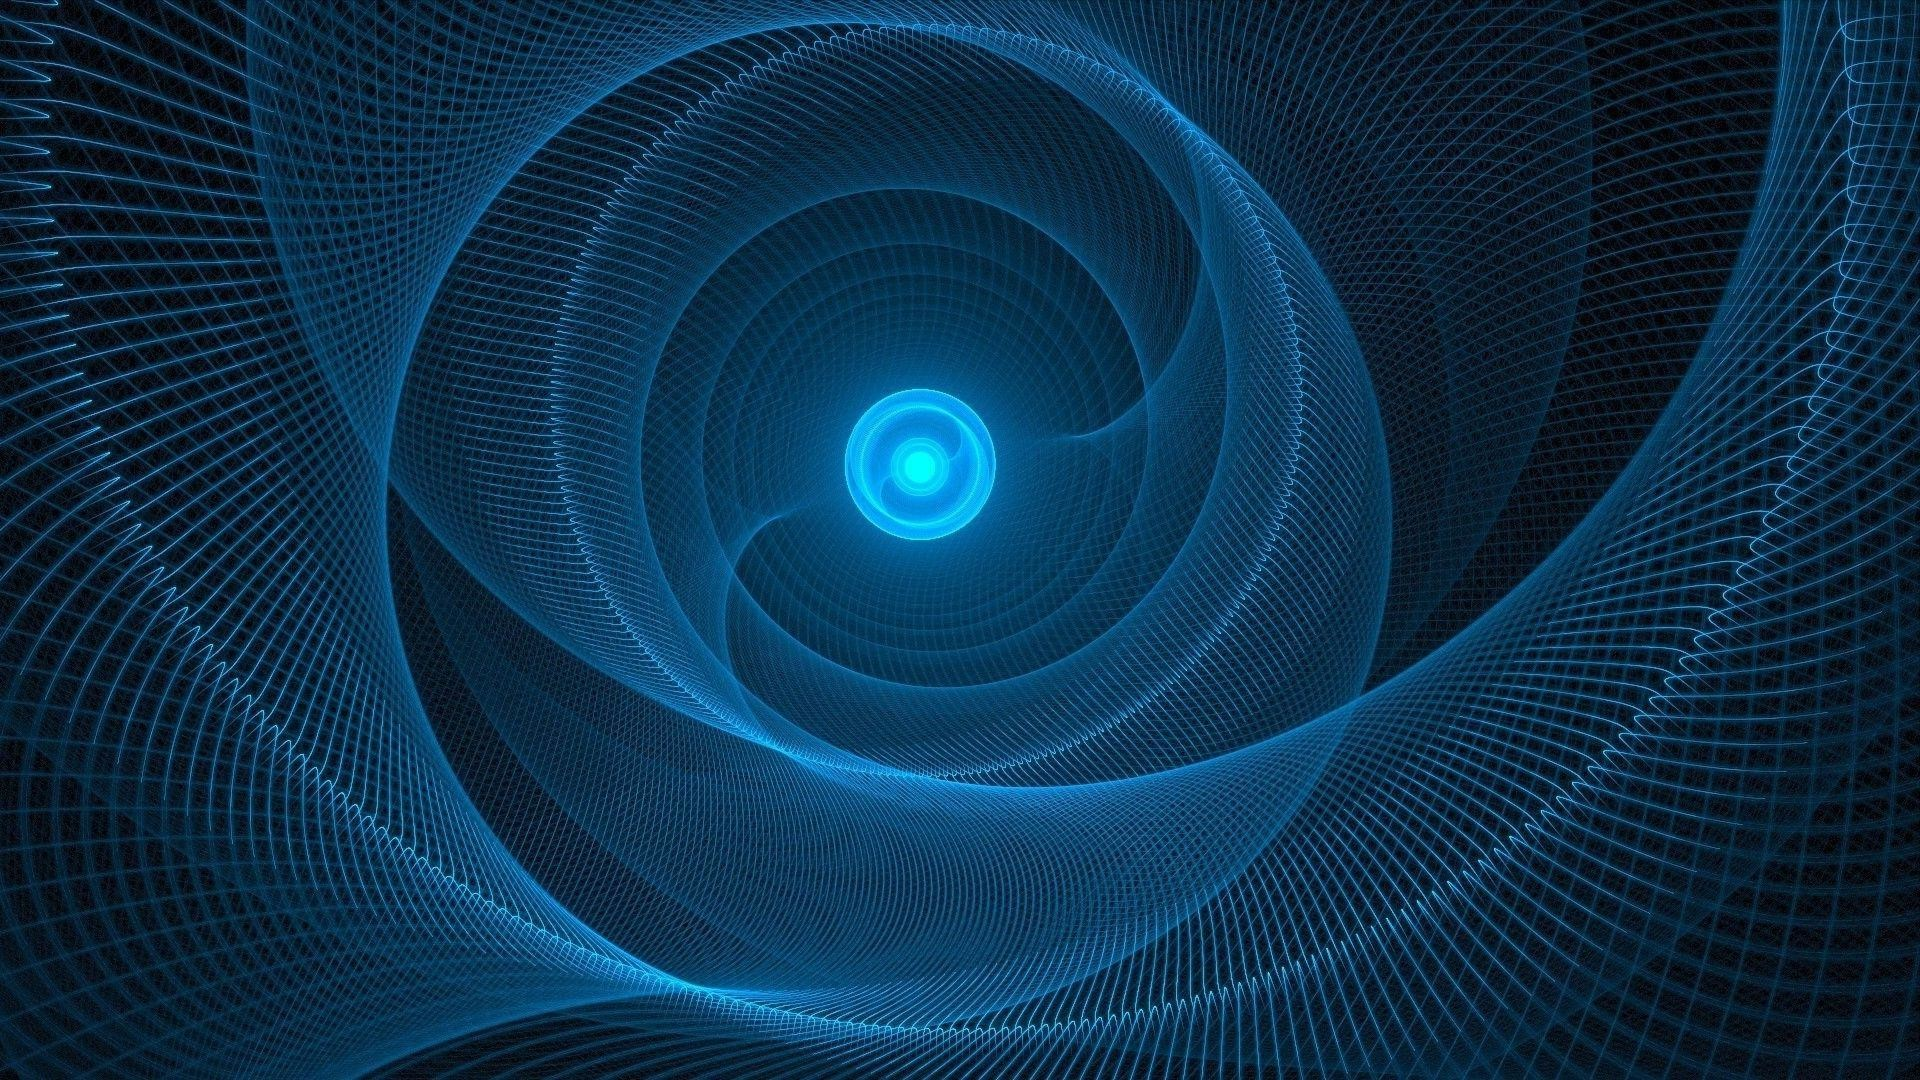 Related Wallpapers. Blue lines in the swirl